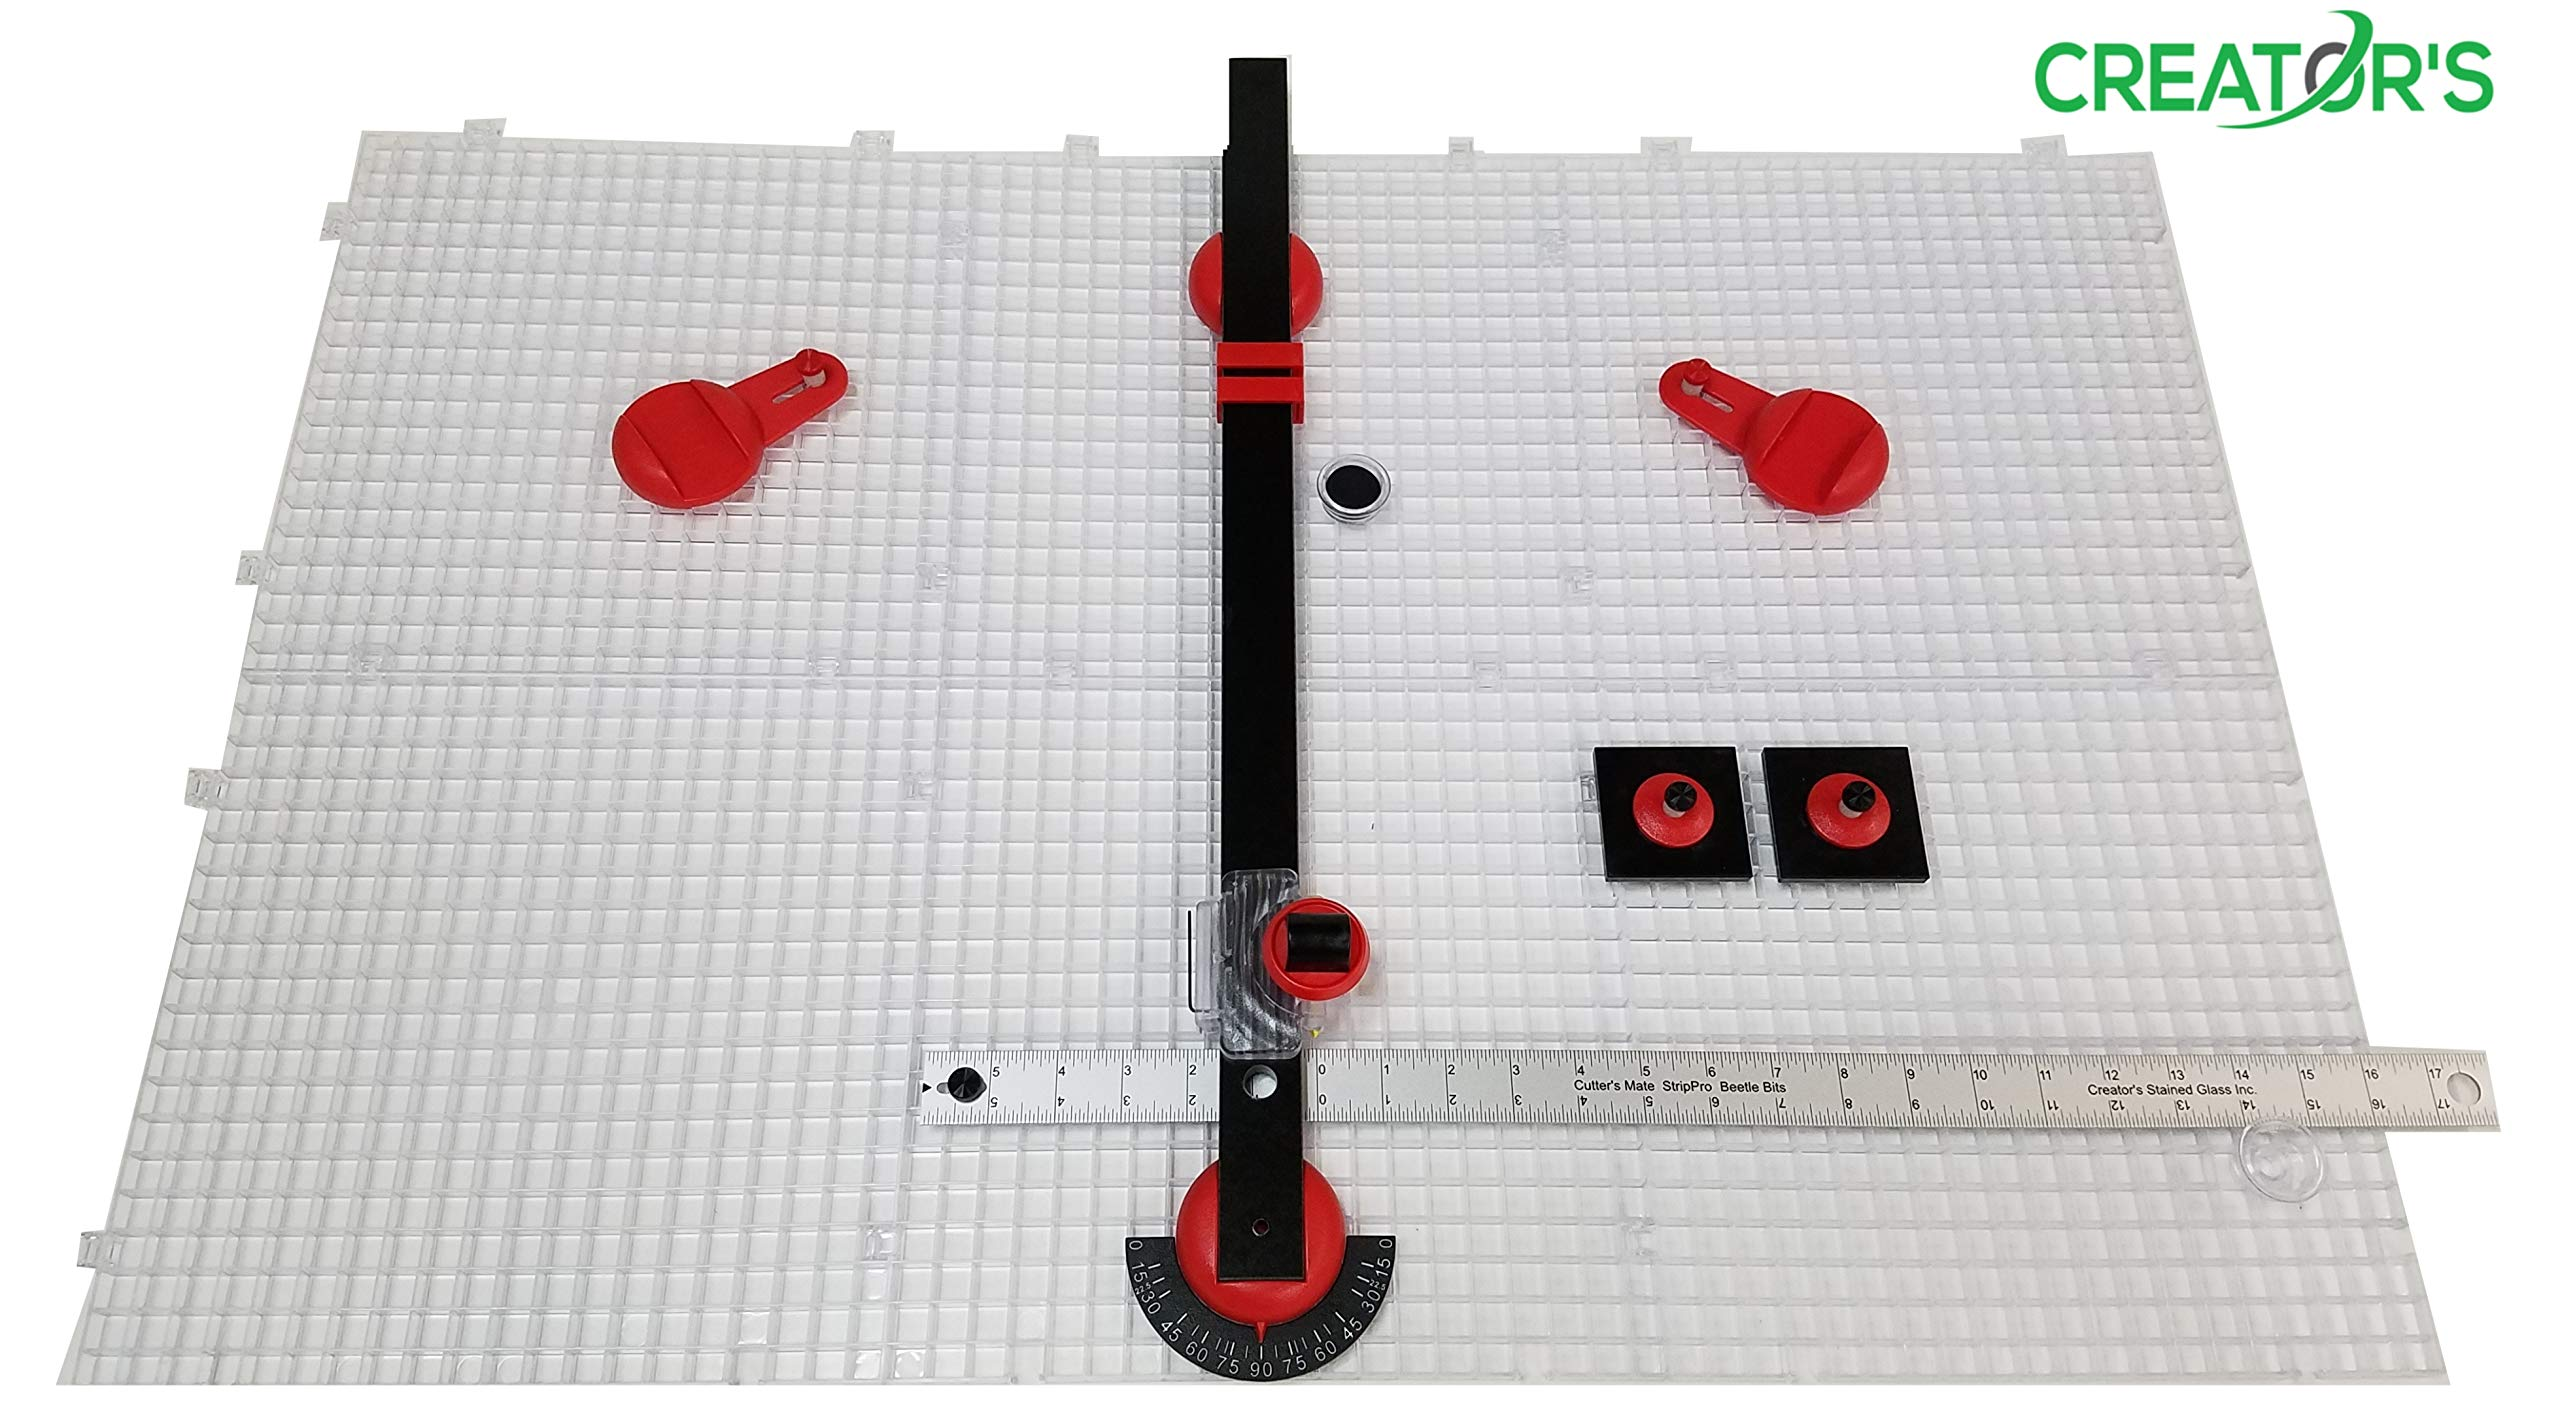 Creator's Ultra Beetle Bits Glass Cutting System - COMPLETE WITH 6-Pack Waffle Grids and Push Button Flying Beetle Glass Cutter INCLUDED - Made In The USA by Creator's